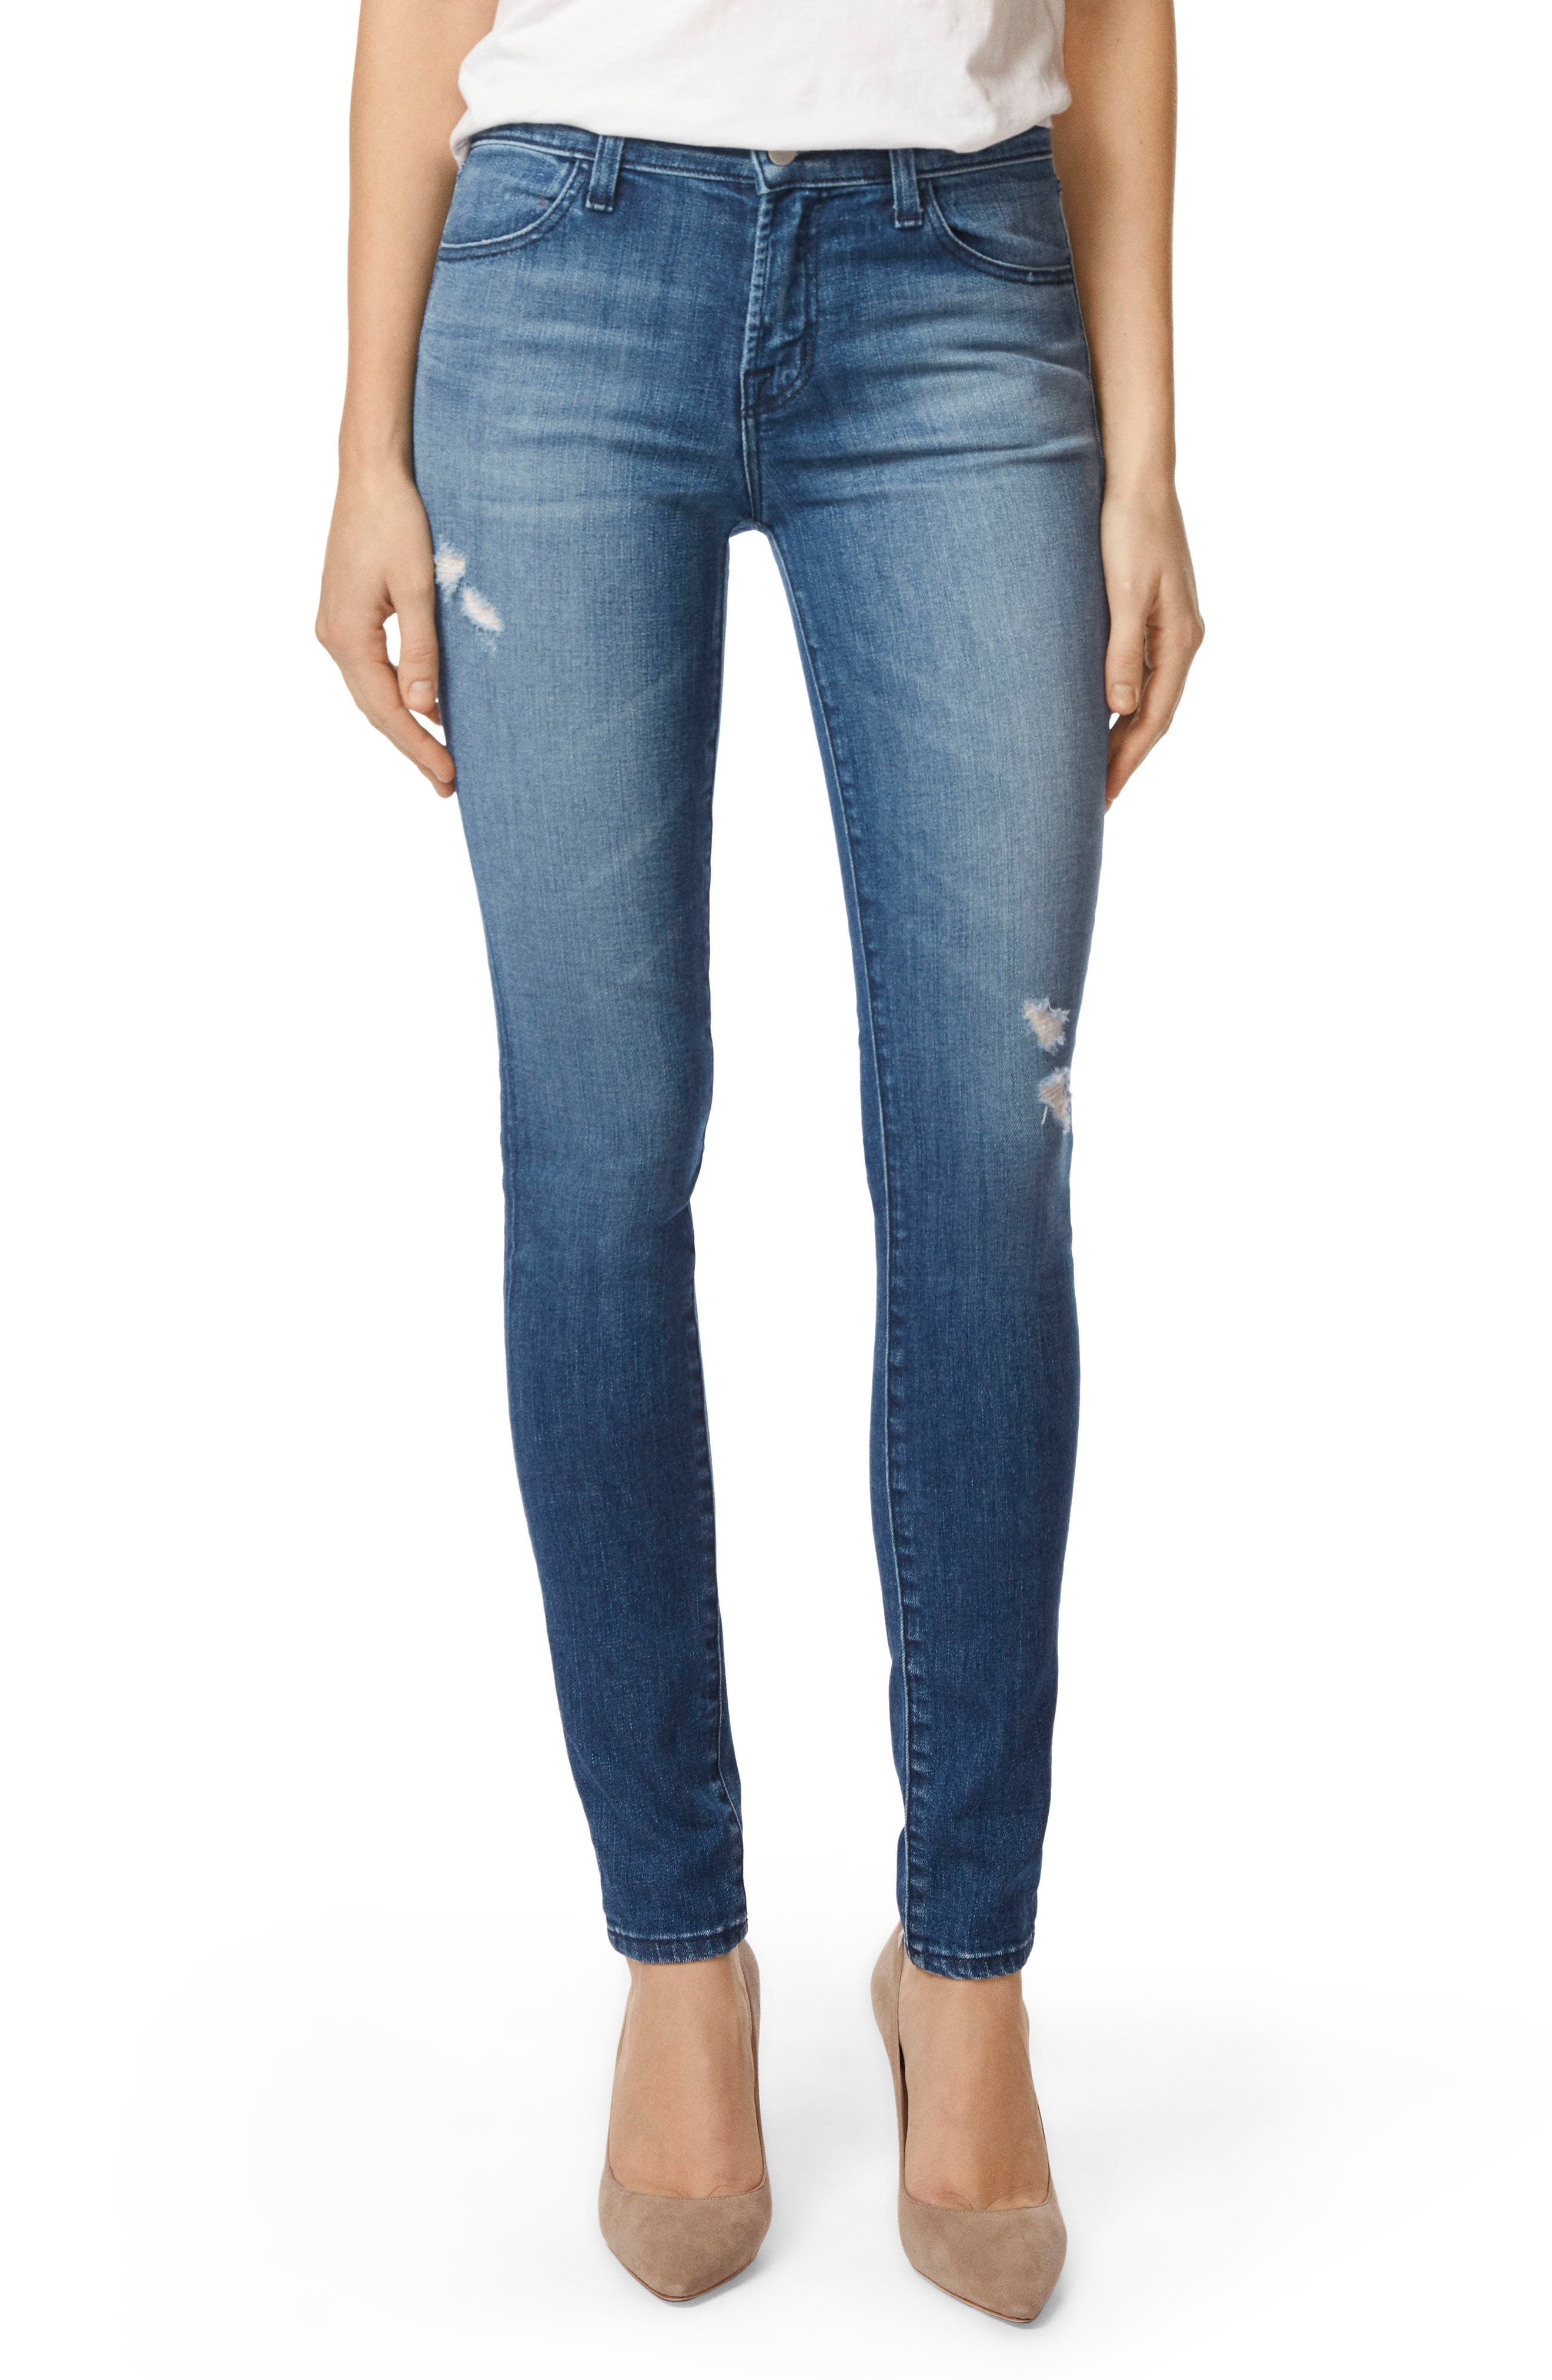 620 Mid Rise Super Skinny Jeans,                             Main thumbnail 1, color,                             Mystic